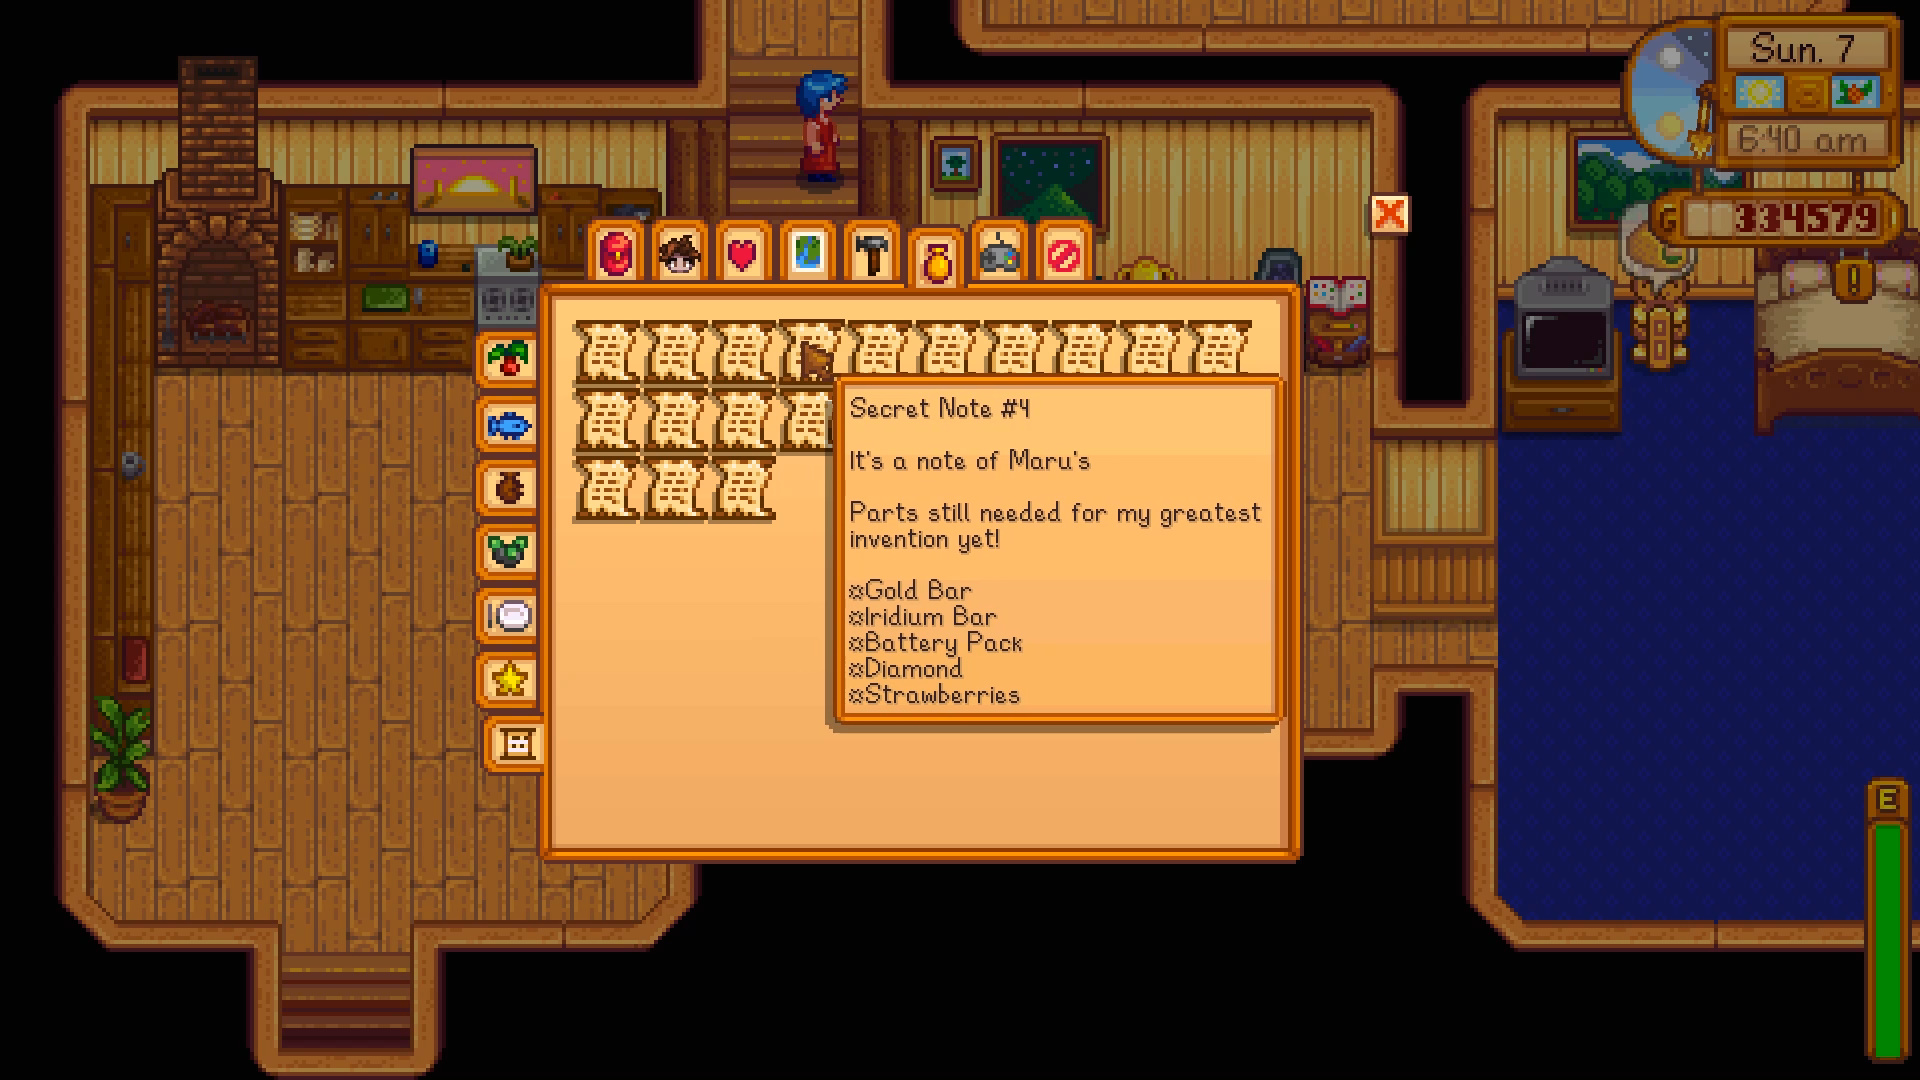 Secret Notes What They Say Rewards They Give Stardew Valley